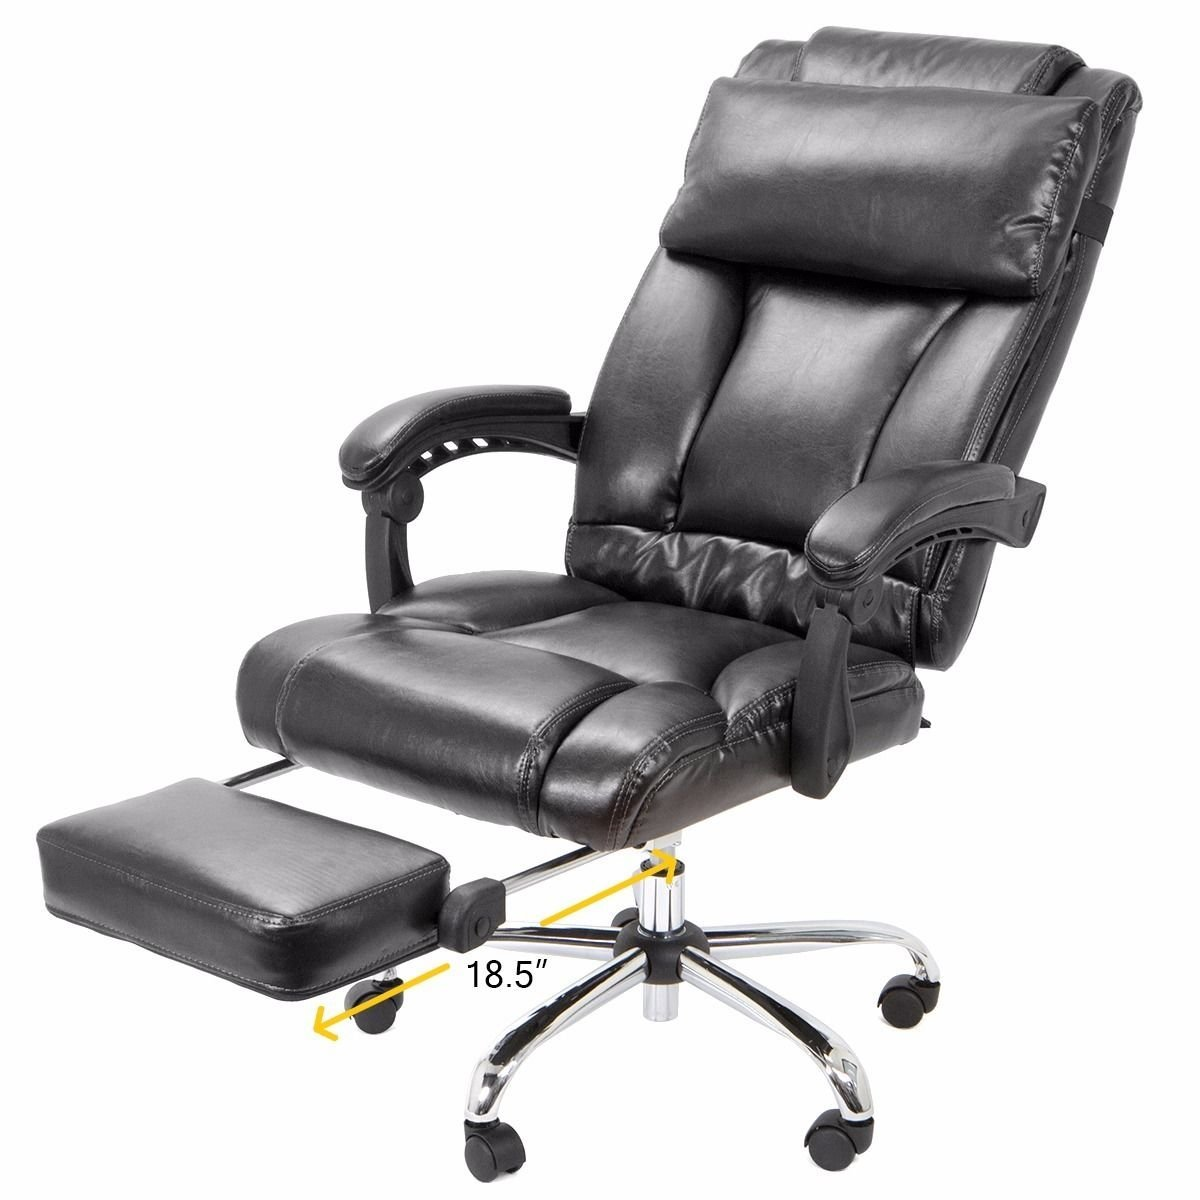 Barton-Executive-Reclining-Office-Chair-Ergonomic-High-Back-Leather-Footrest Barton-Executive-Reclining-Office-Chair-Ergonomic-High-Back-Leather-Footrest Barton-Executive-Reclining-Office-Chair-Erg